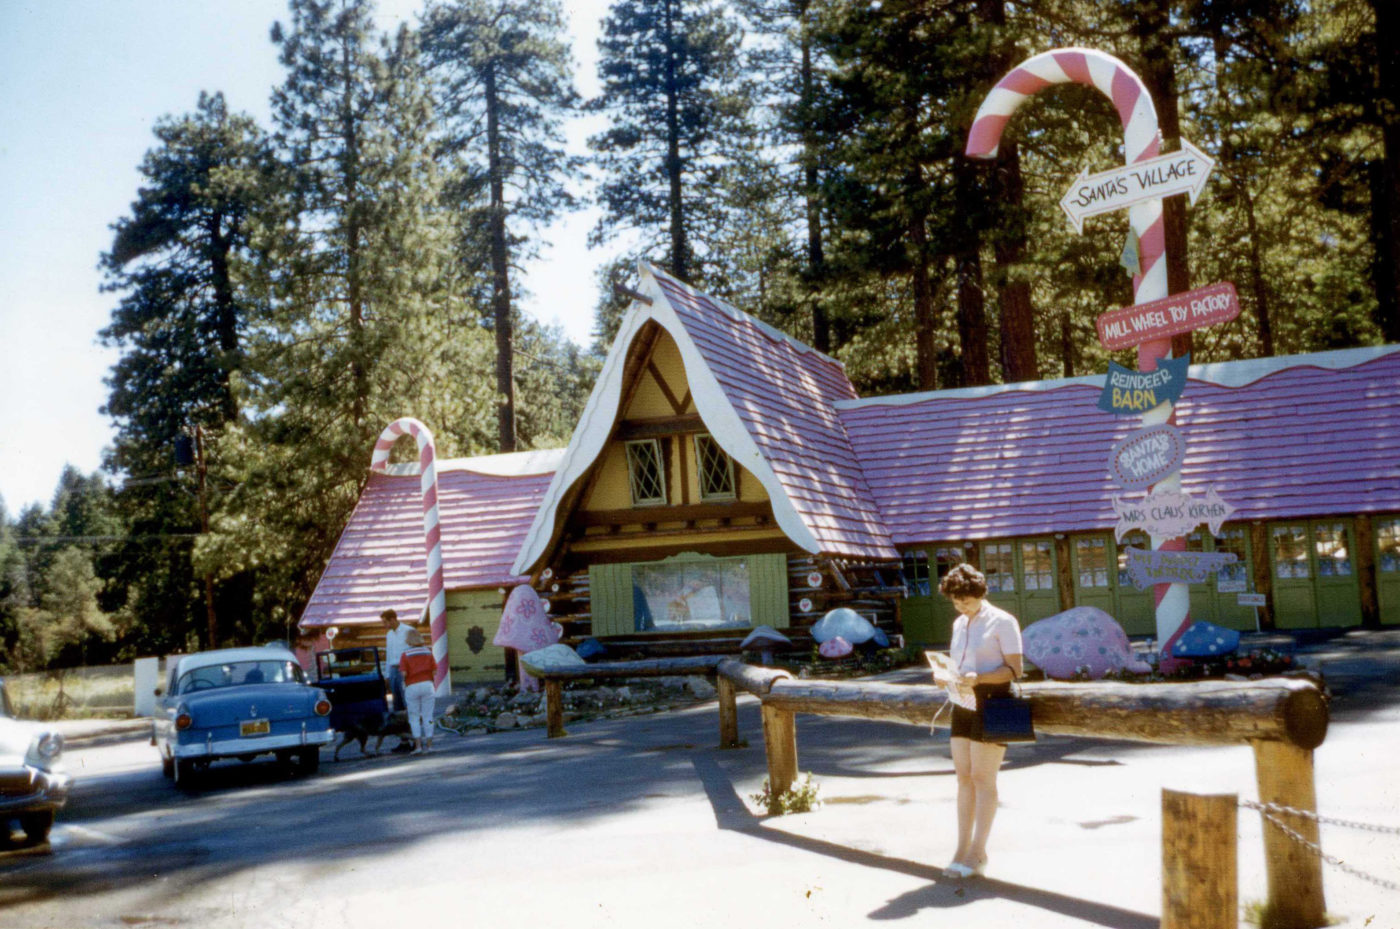 About us - SkyPark at Santa's Village History - Things to do in Lake Arrowhead